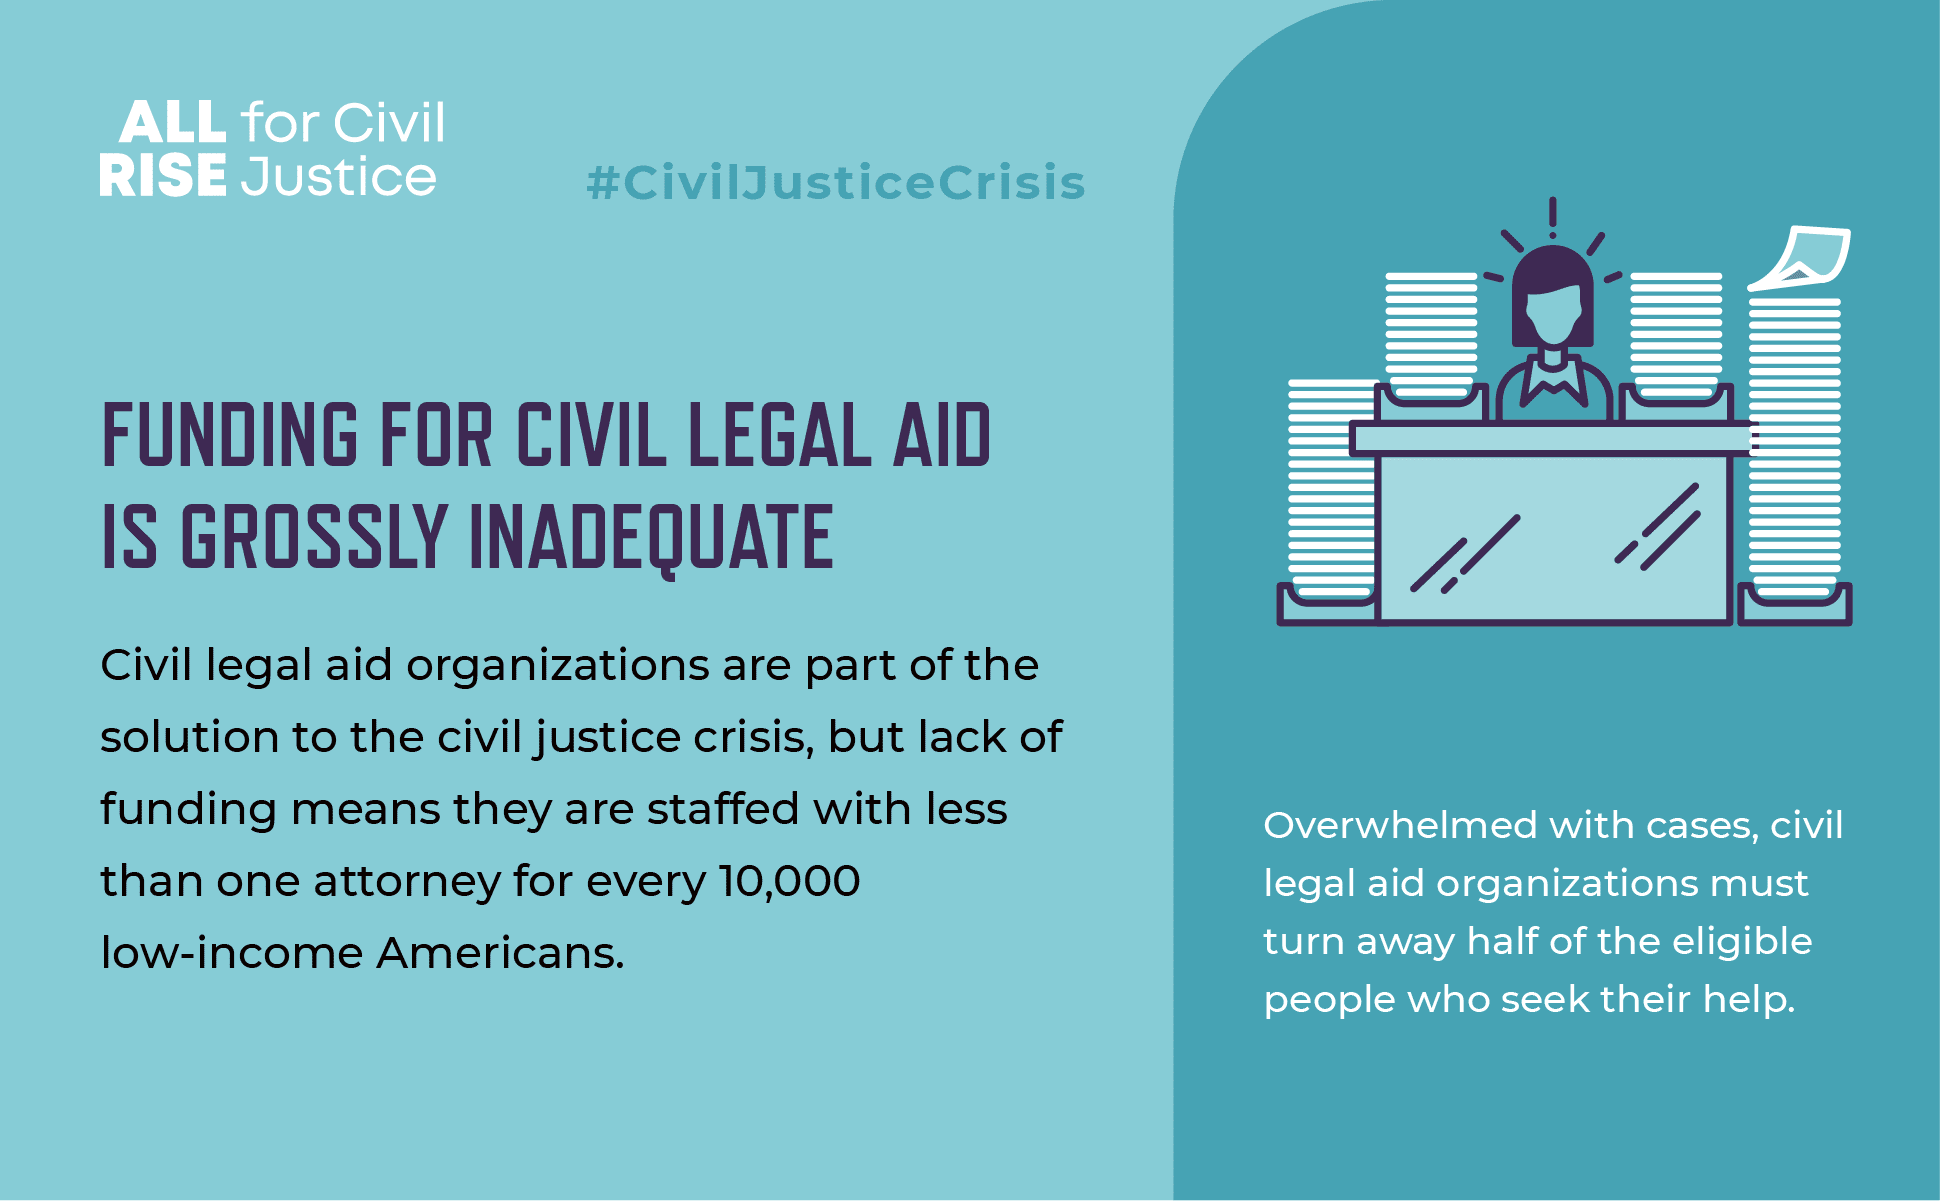 Funding for civil legal aid is grossly inadequate.